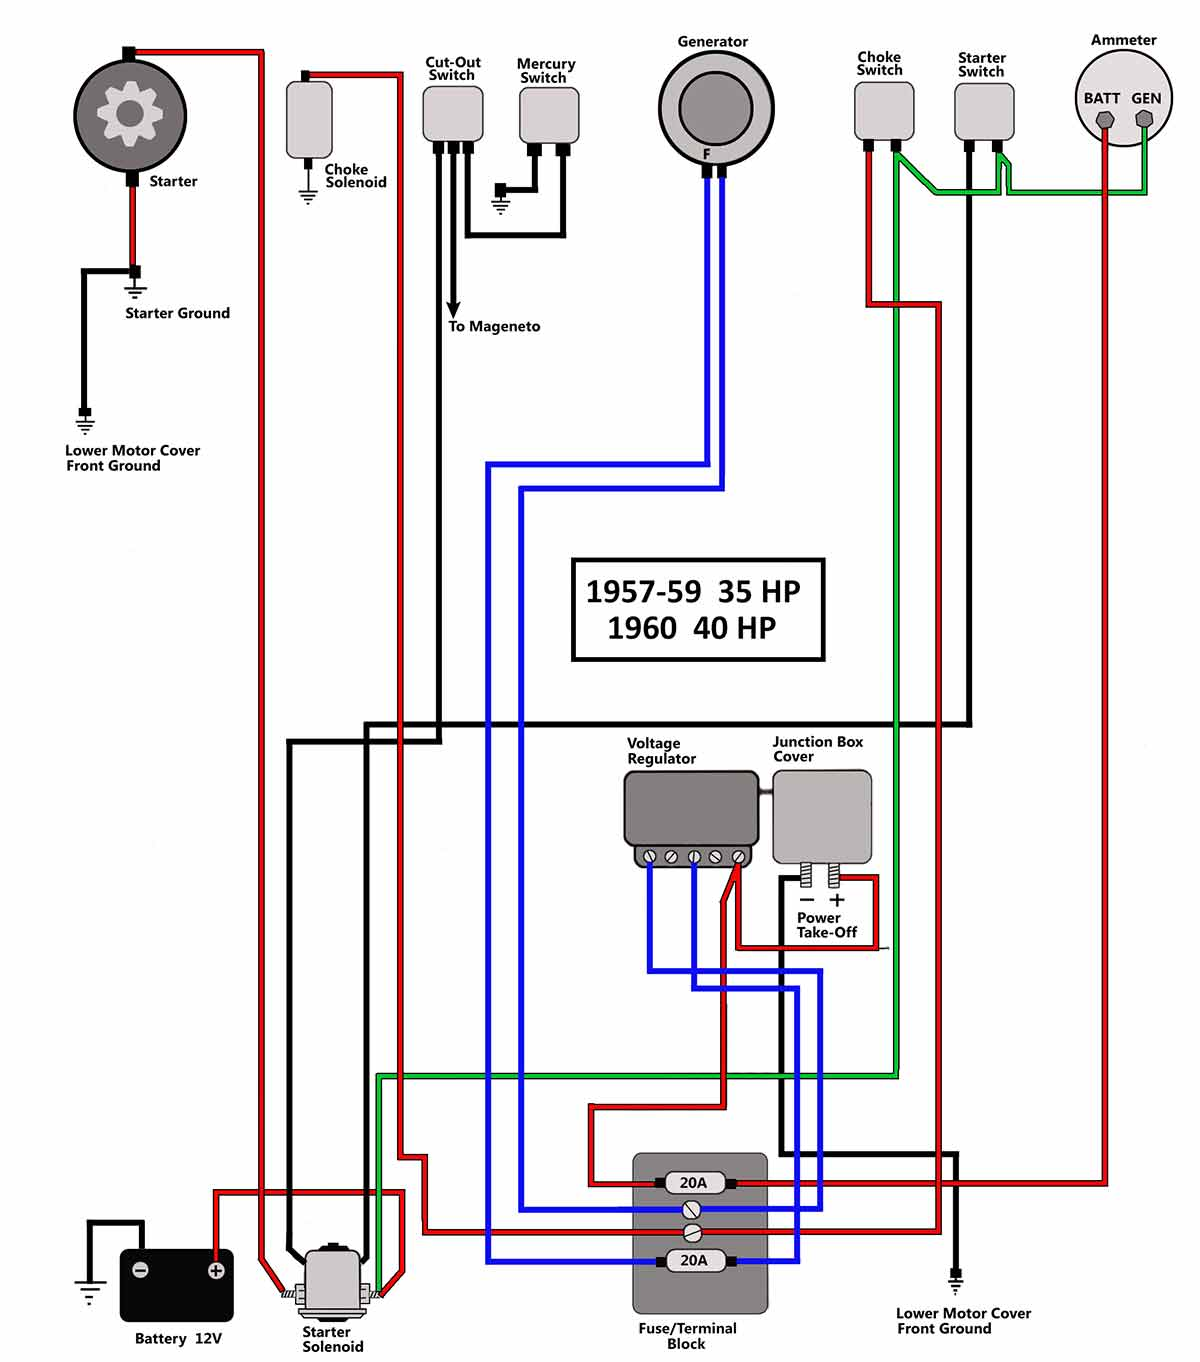 mastertech marine -- evinrude johnson outboard wiring diagrams 60 hp johnson outboard wiring diagram #12